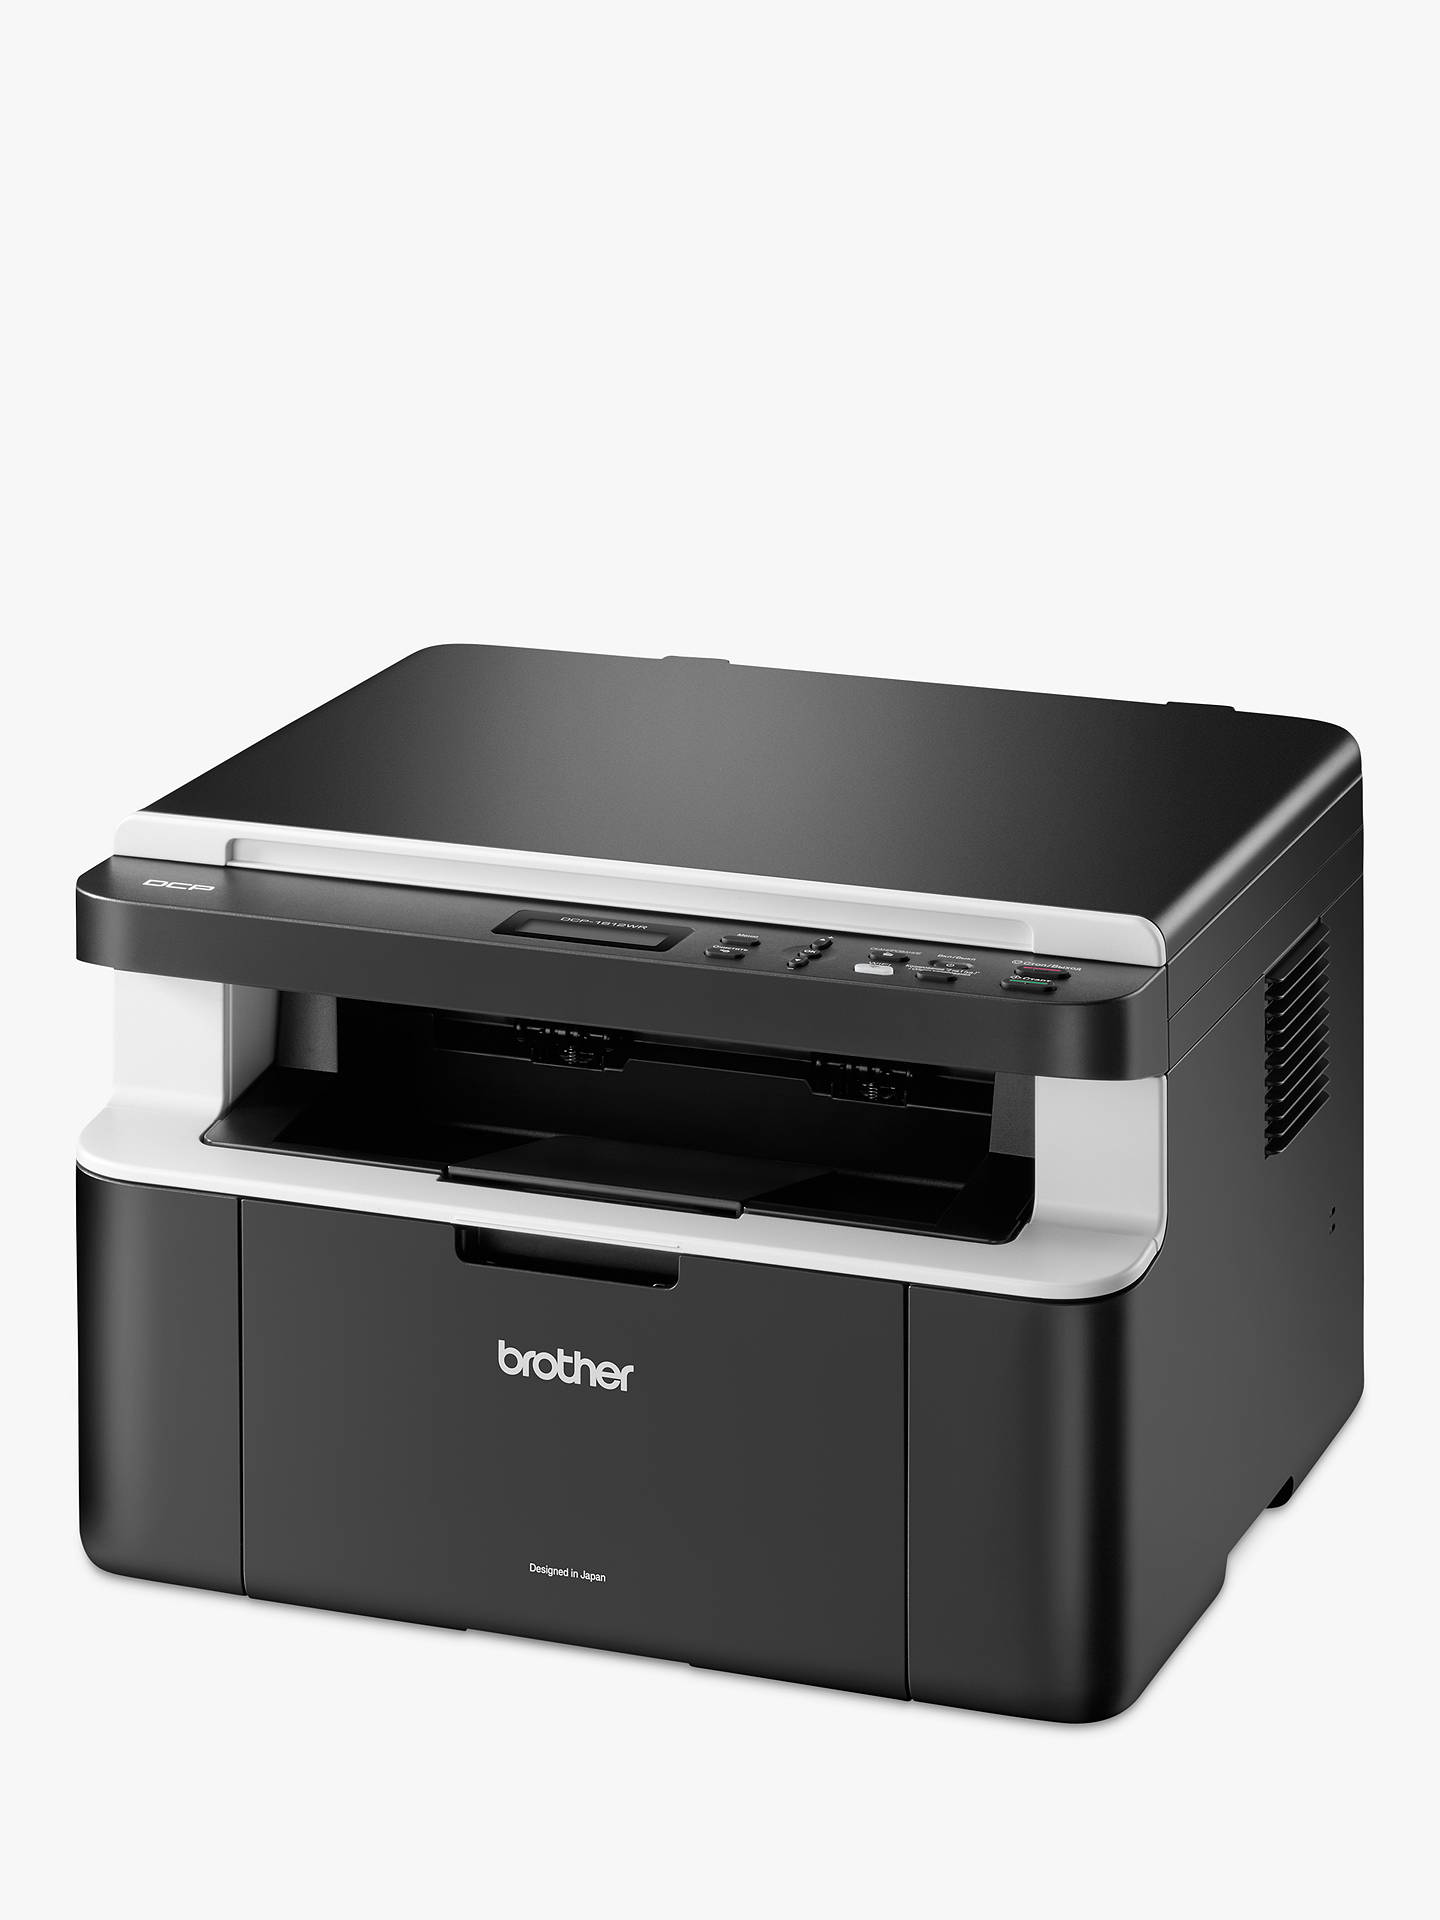 Buy Brother DCP-1612W Wireless All-In-One Mono Laser Printer with 5 Toners, Black Online at johnlewis.com